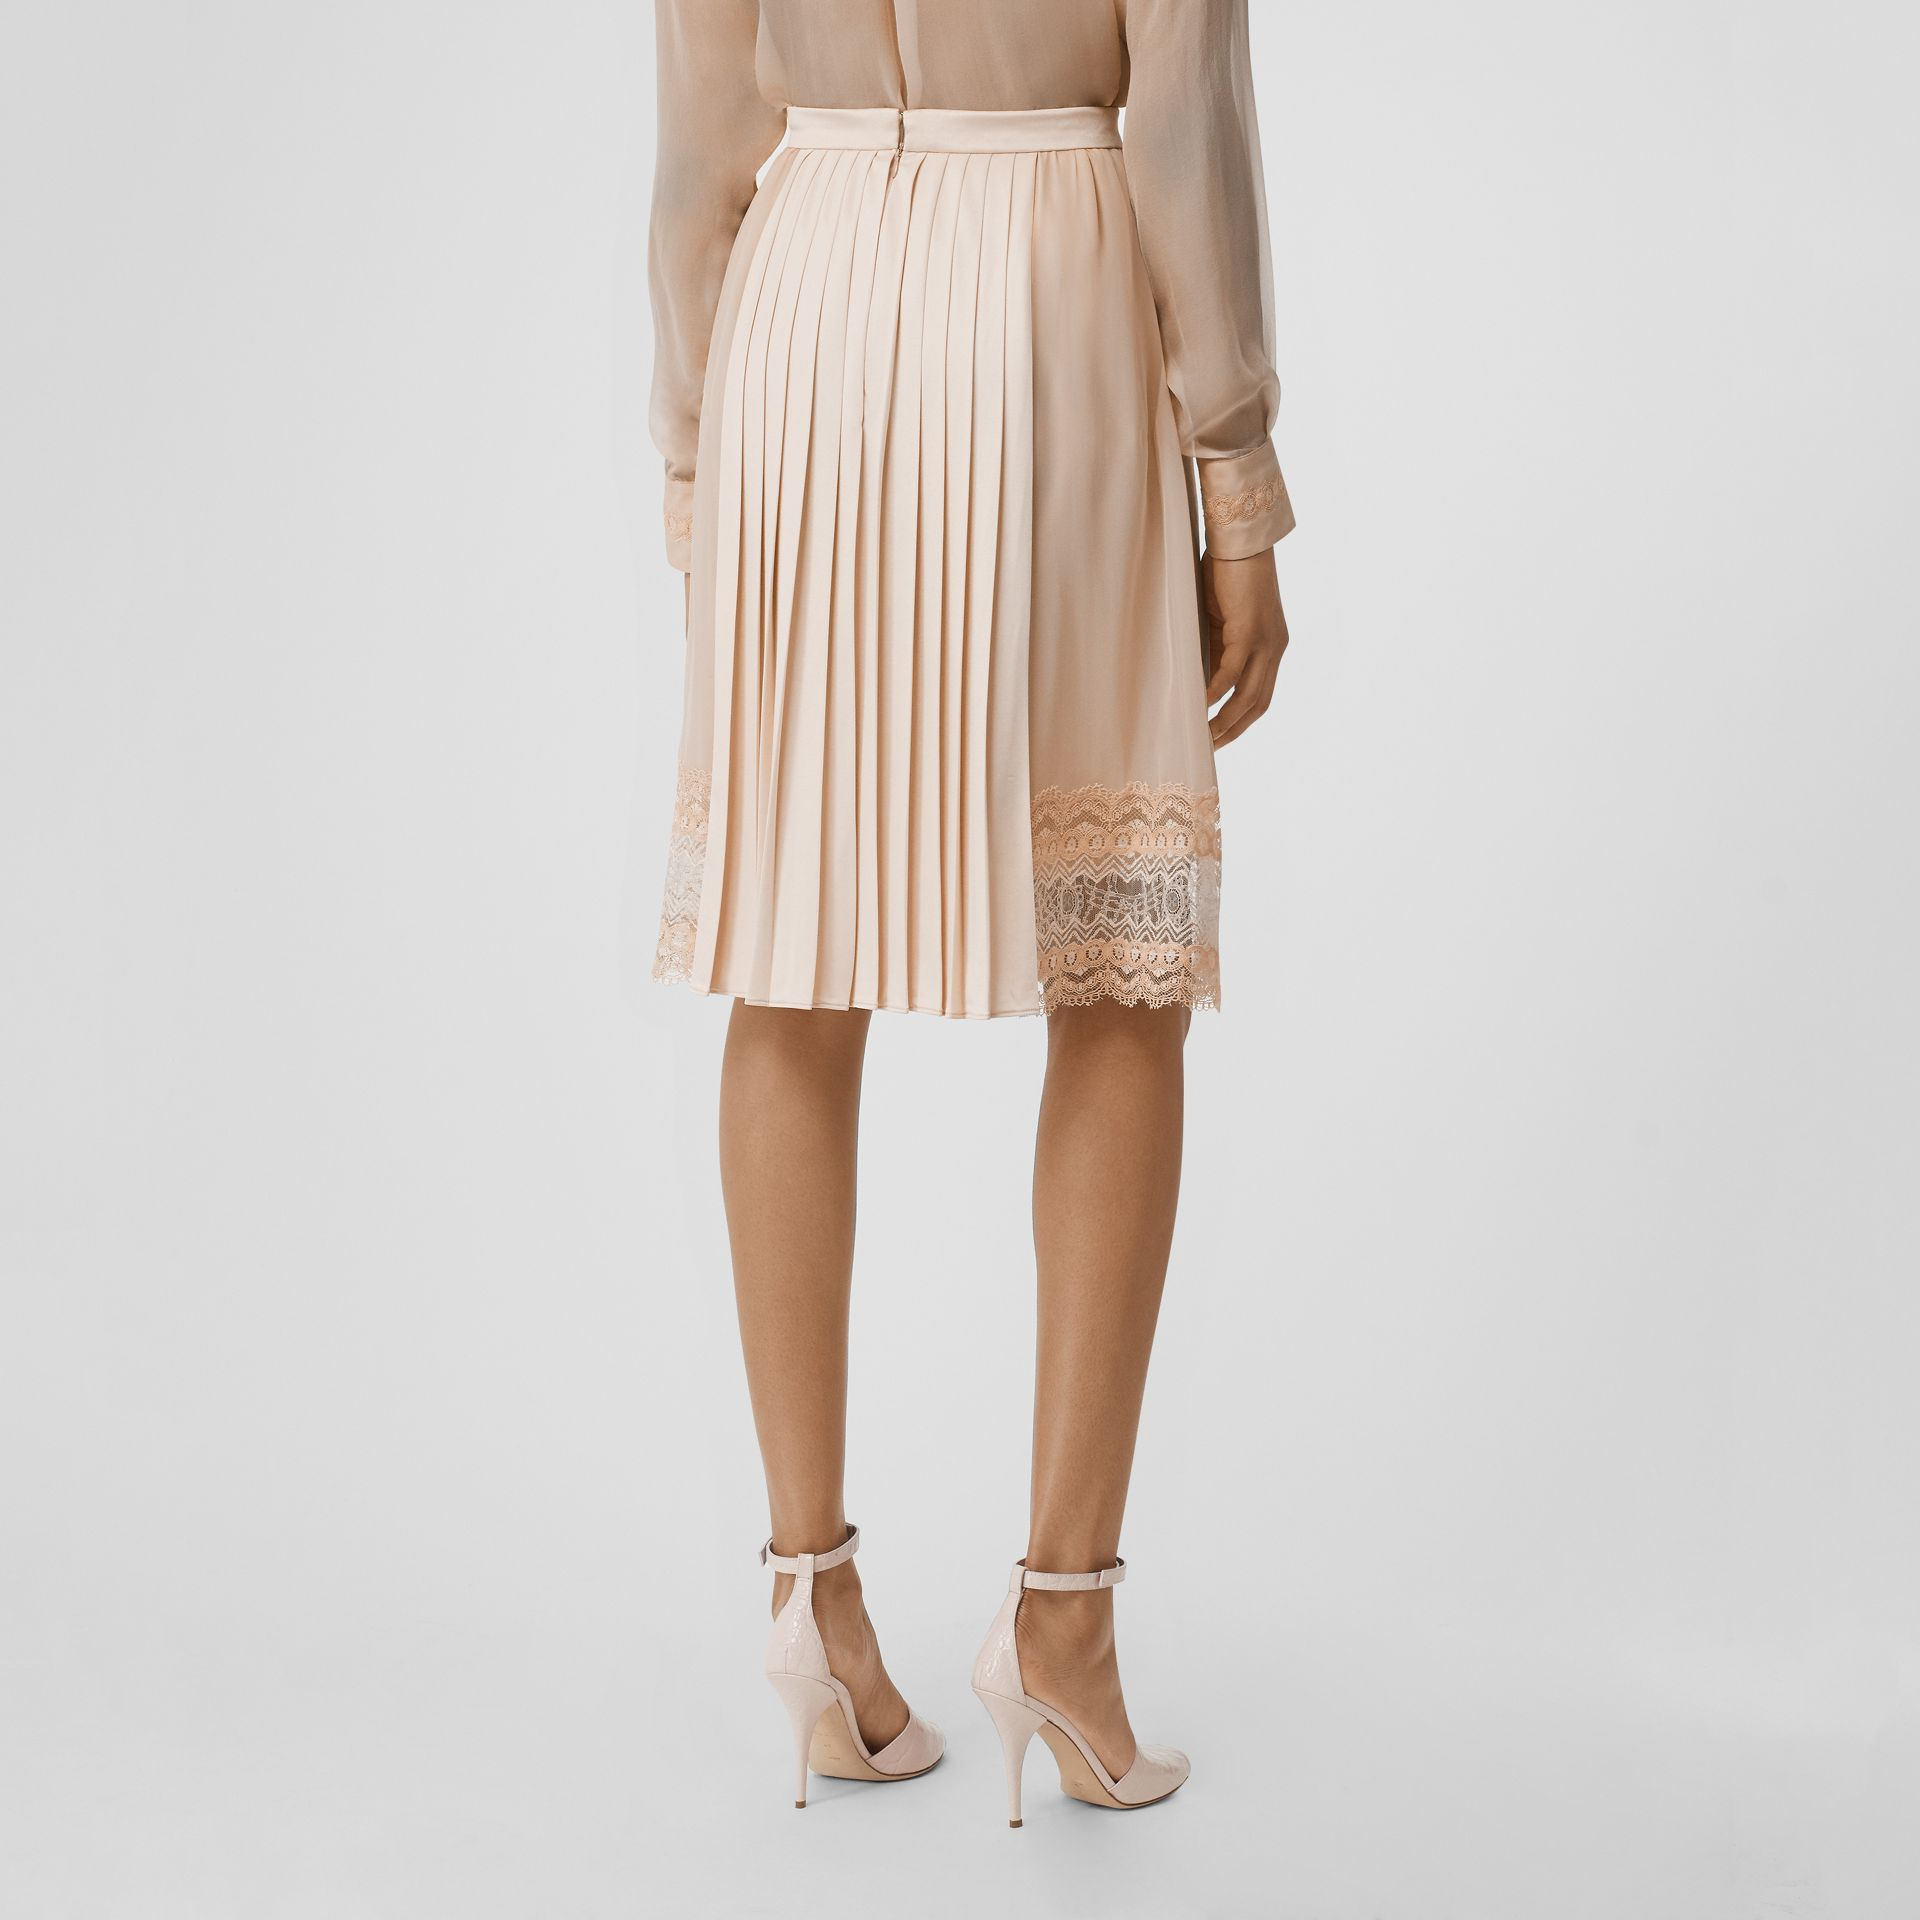 Lace Detail Silk Panel Pleated Skirt in Soft Peach - Women | Burberry Canada - gallery image 4